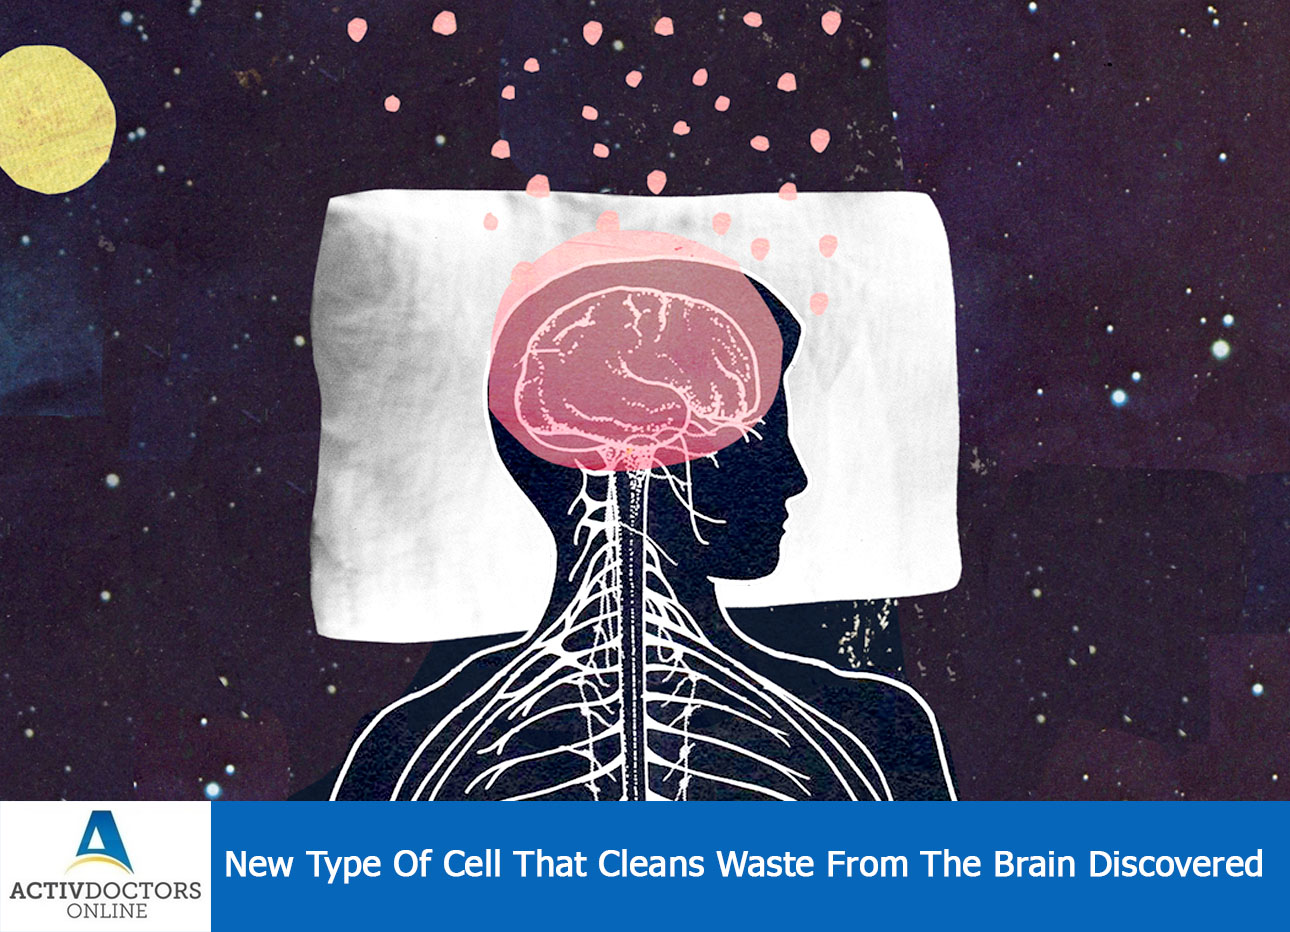 NEW TYPE OF CELL THAT CLEARS WASTE FROM THE BRAIN DISCOVERED